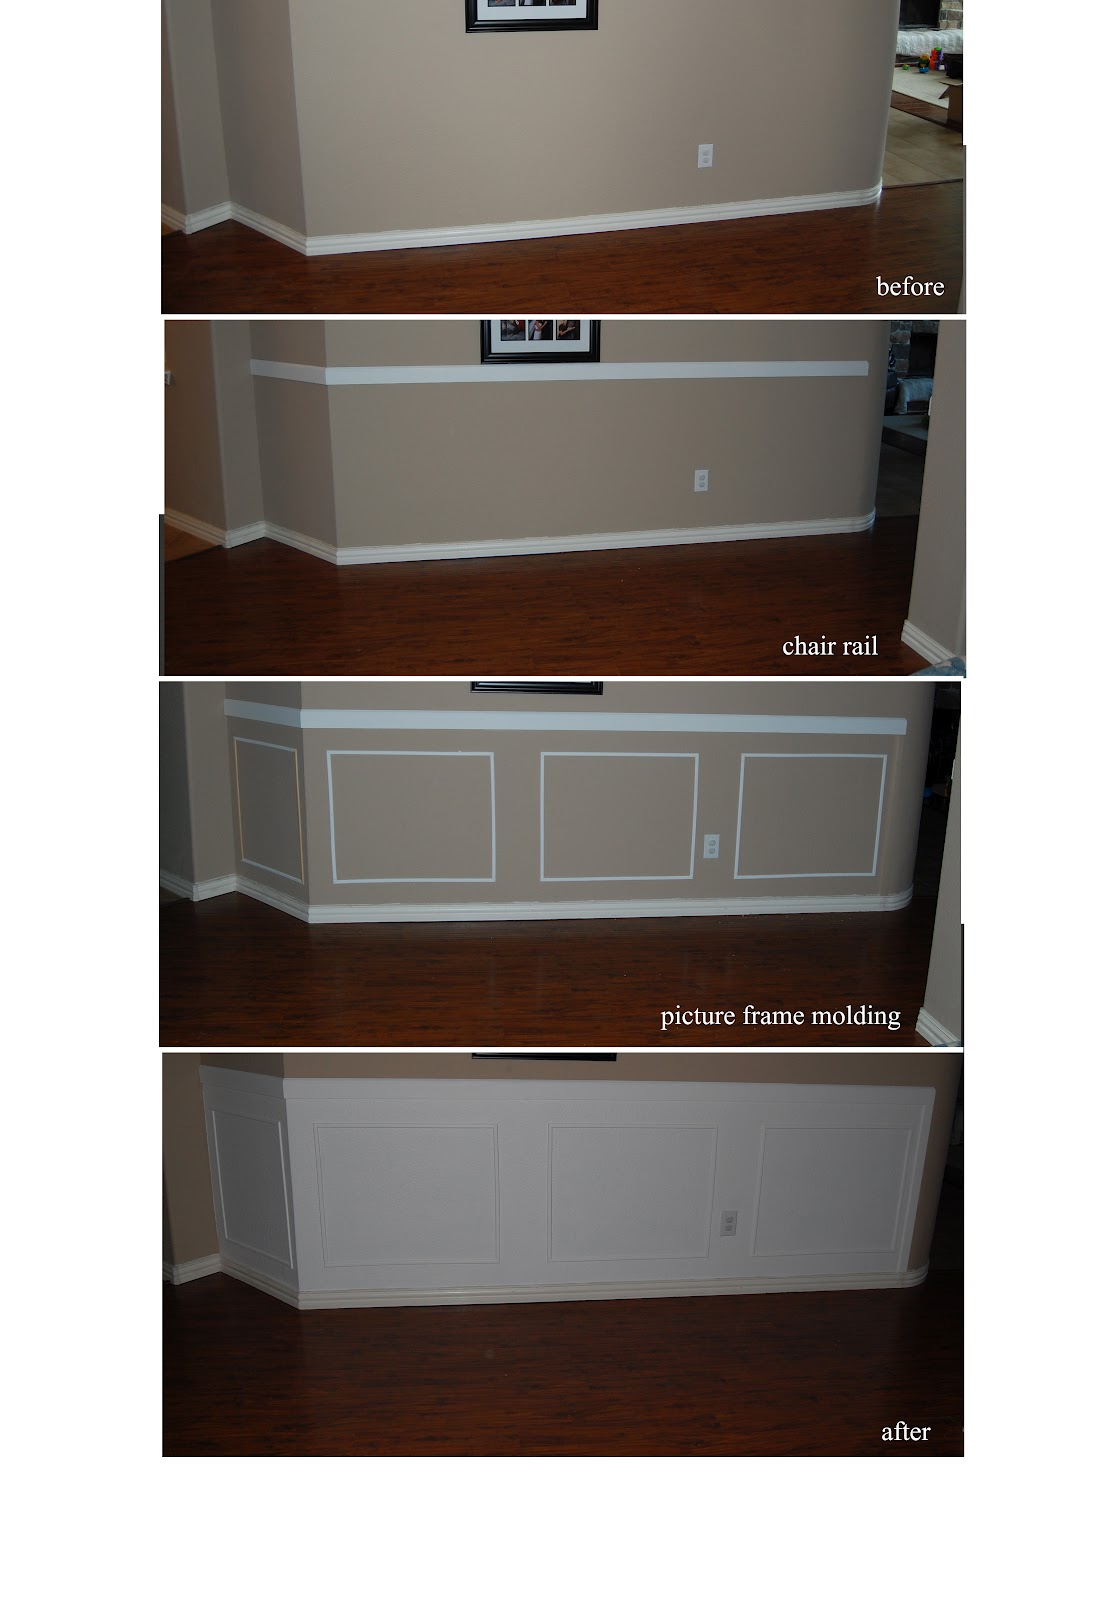 Style with wisdom my love affair with wainscoting did i mention i love wainscoting what a huge transformation for very little time and money each piece of trim only cost 85 cents per foot jeuxipadfo Images